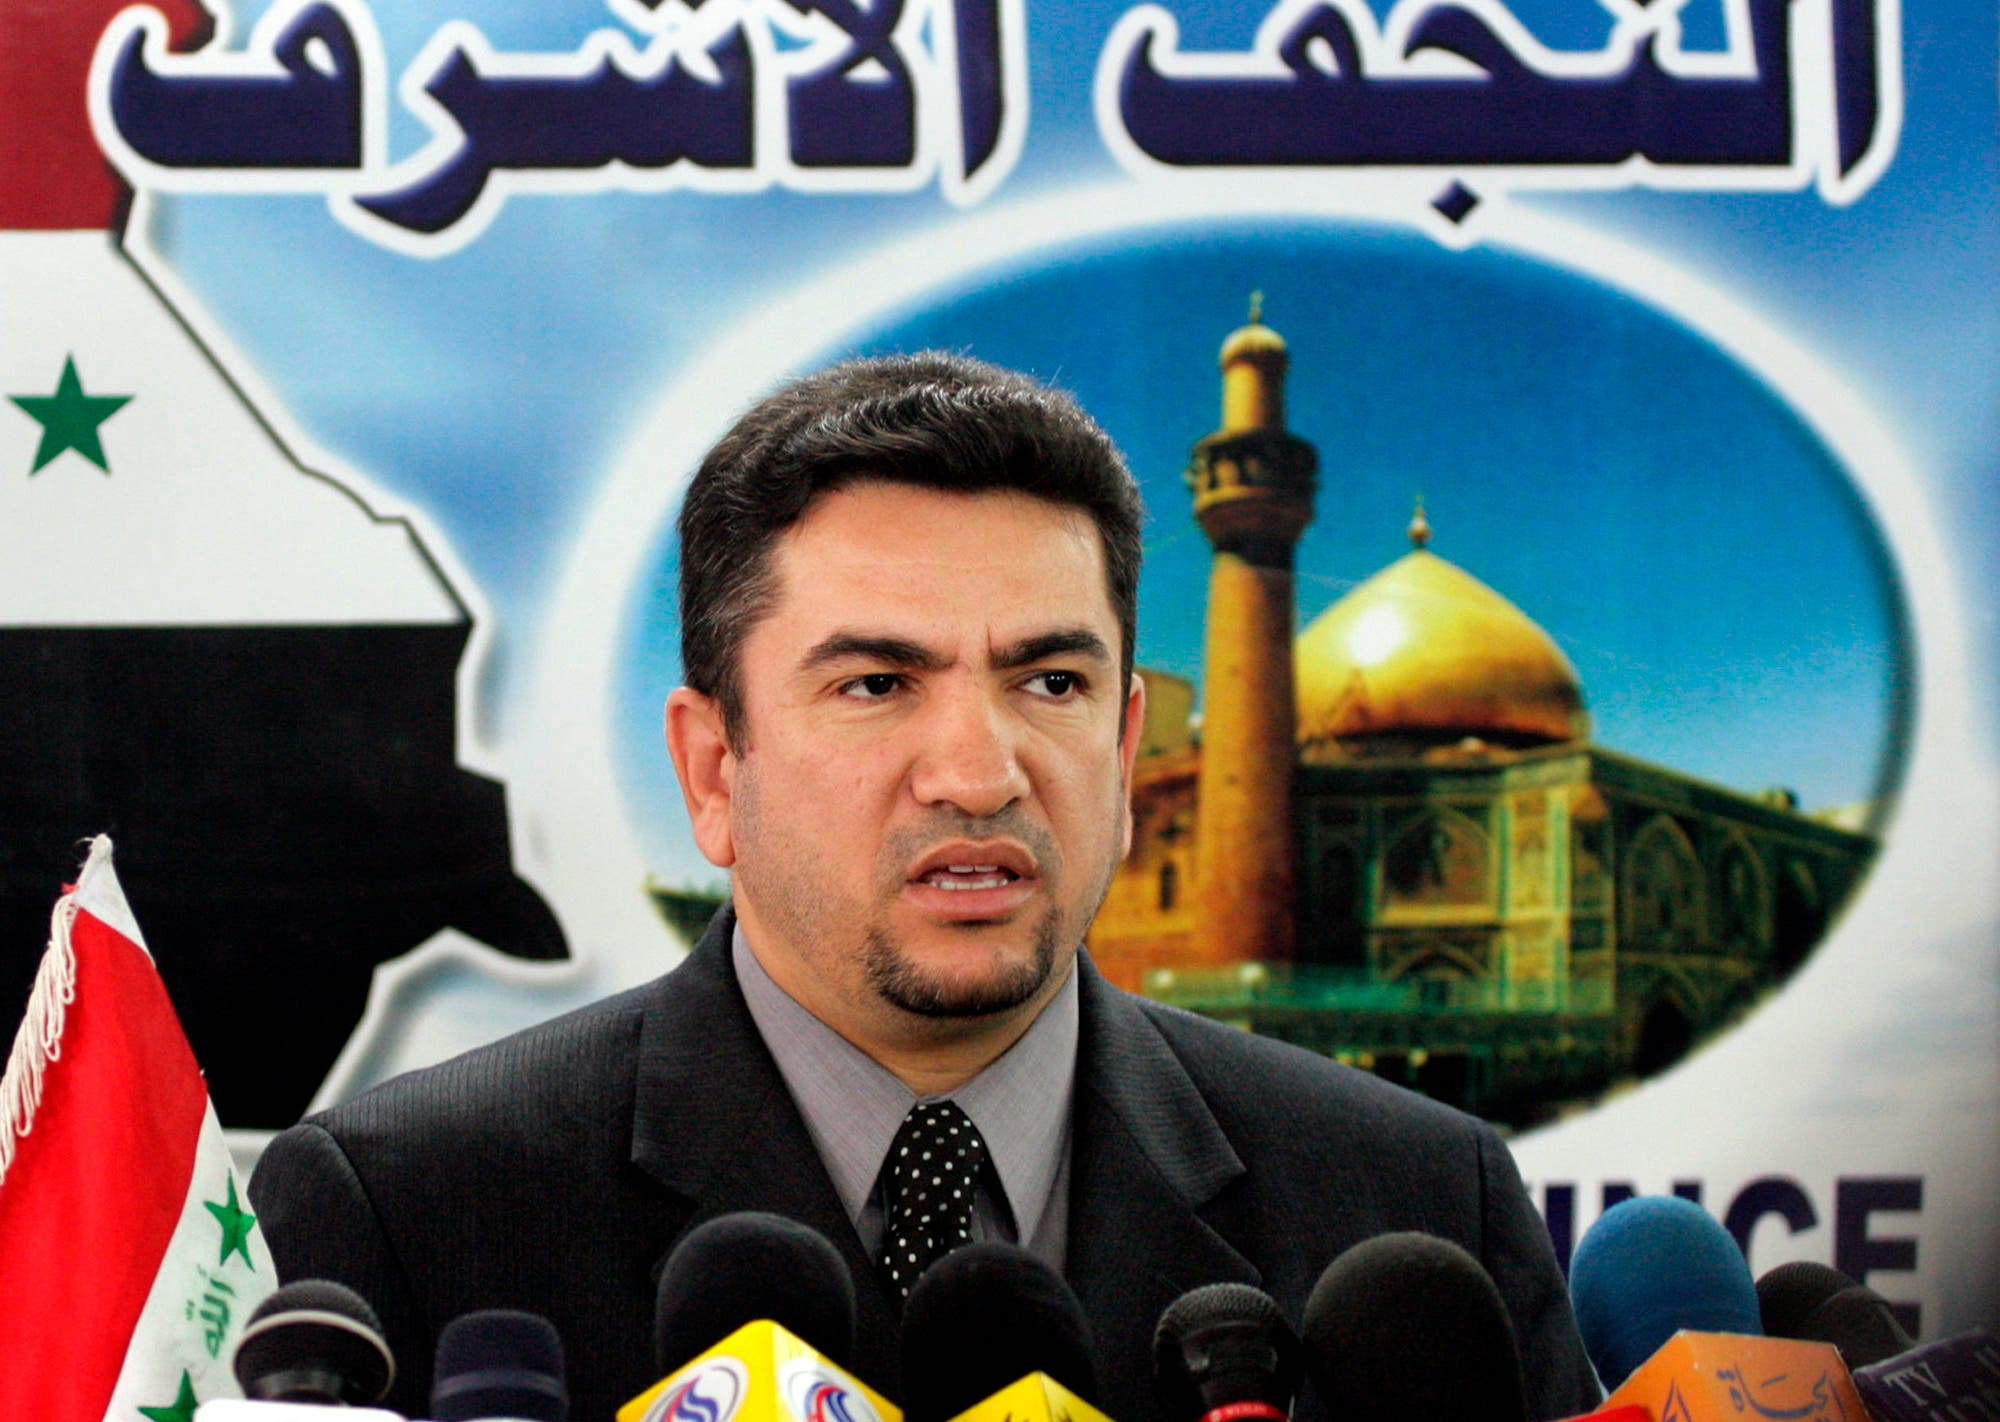 Governor of Najaf Adnan Al-Zurfi at a news conference in Najaf, Iraq on Feb. 5, 2005. (AP)